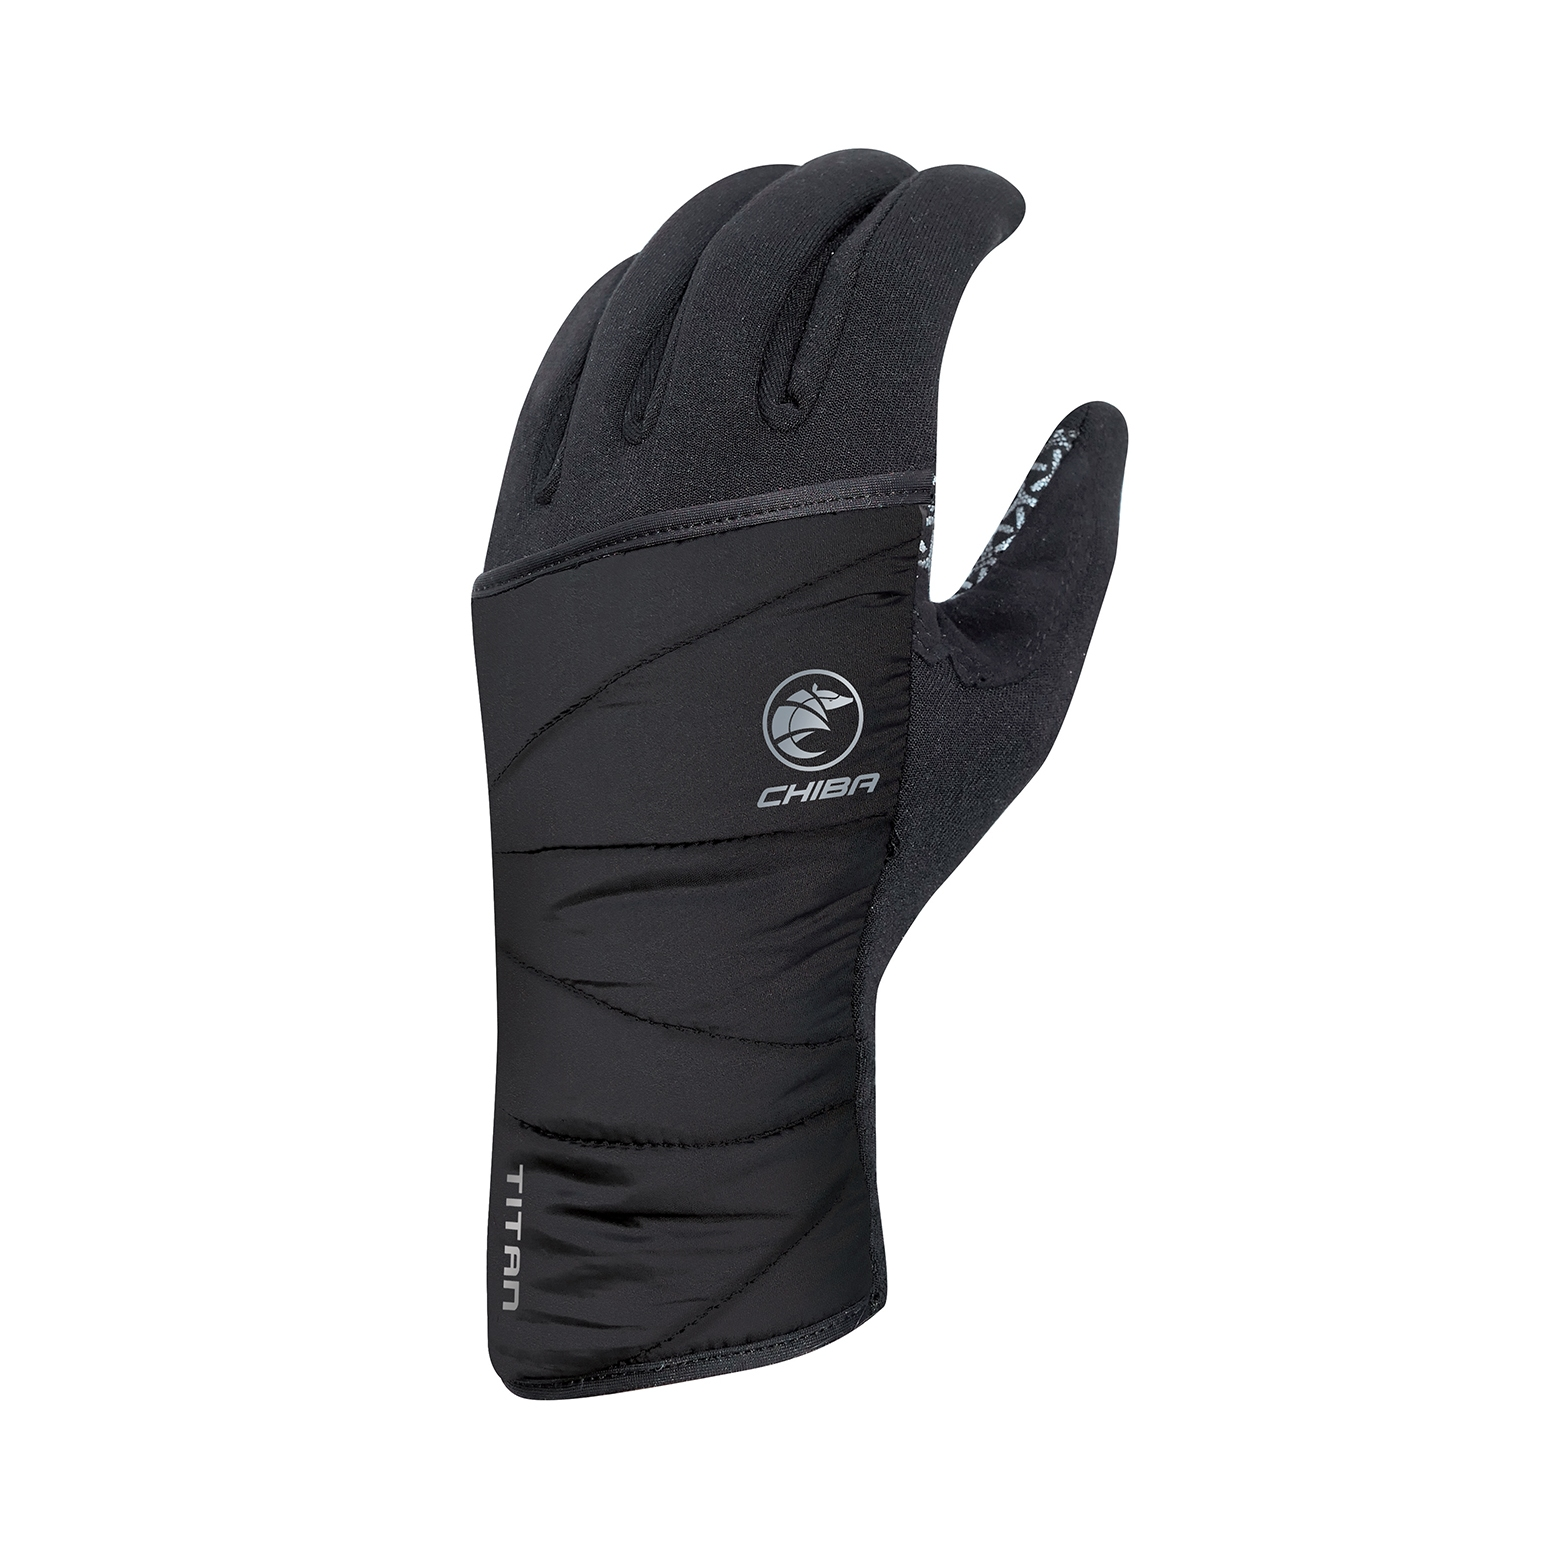 Picture of Chiba Polarfleece Titan Bike Gloves with Protective Cover - black